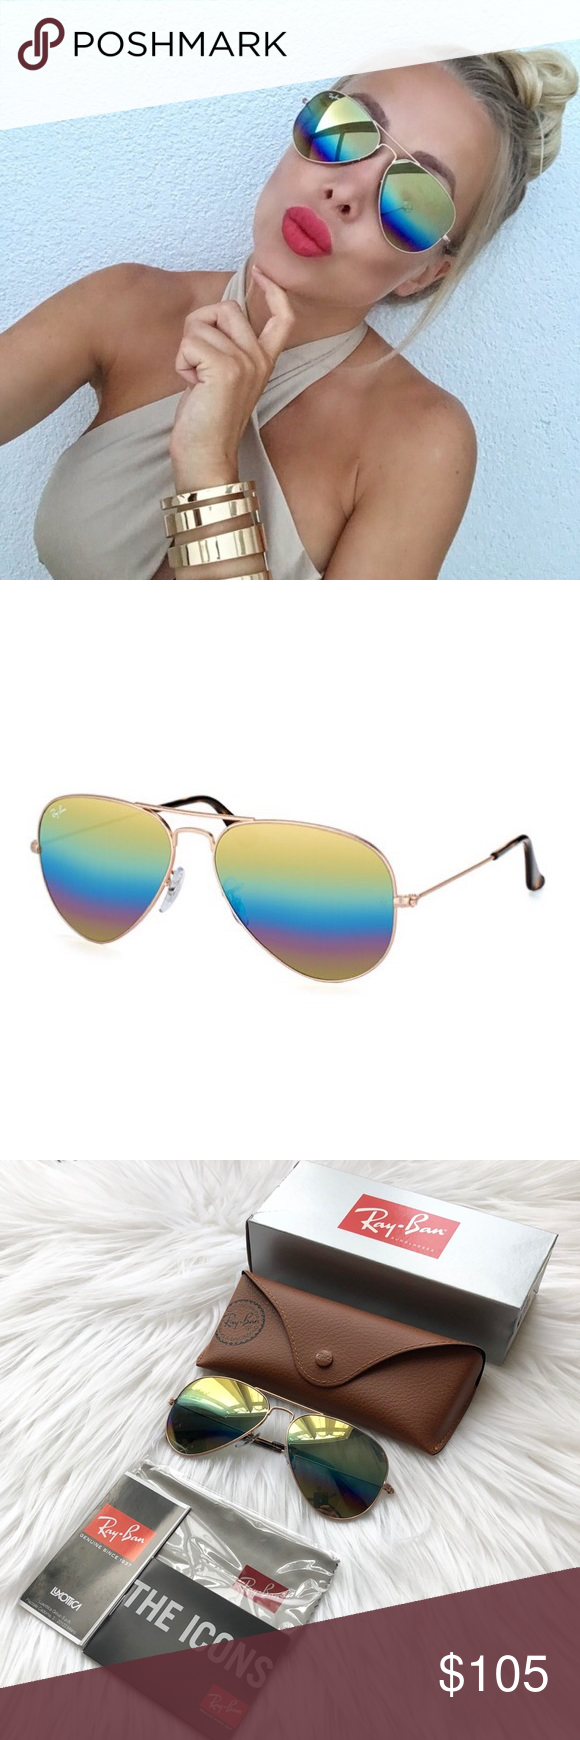 ff7bd766b5 NEW    Ray-Ban RB3025 Gradient Large Aviators Authentic Ray-Ban RB3025 9020